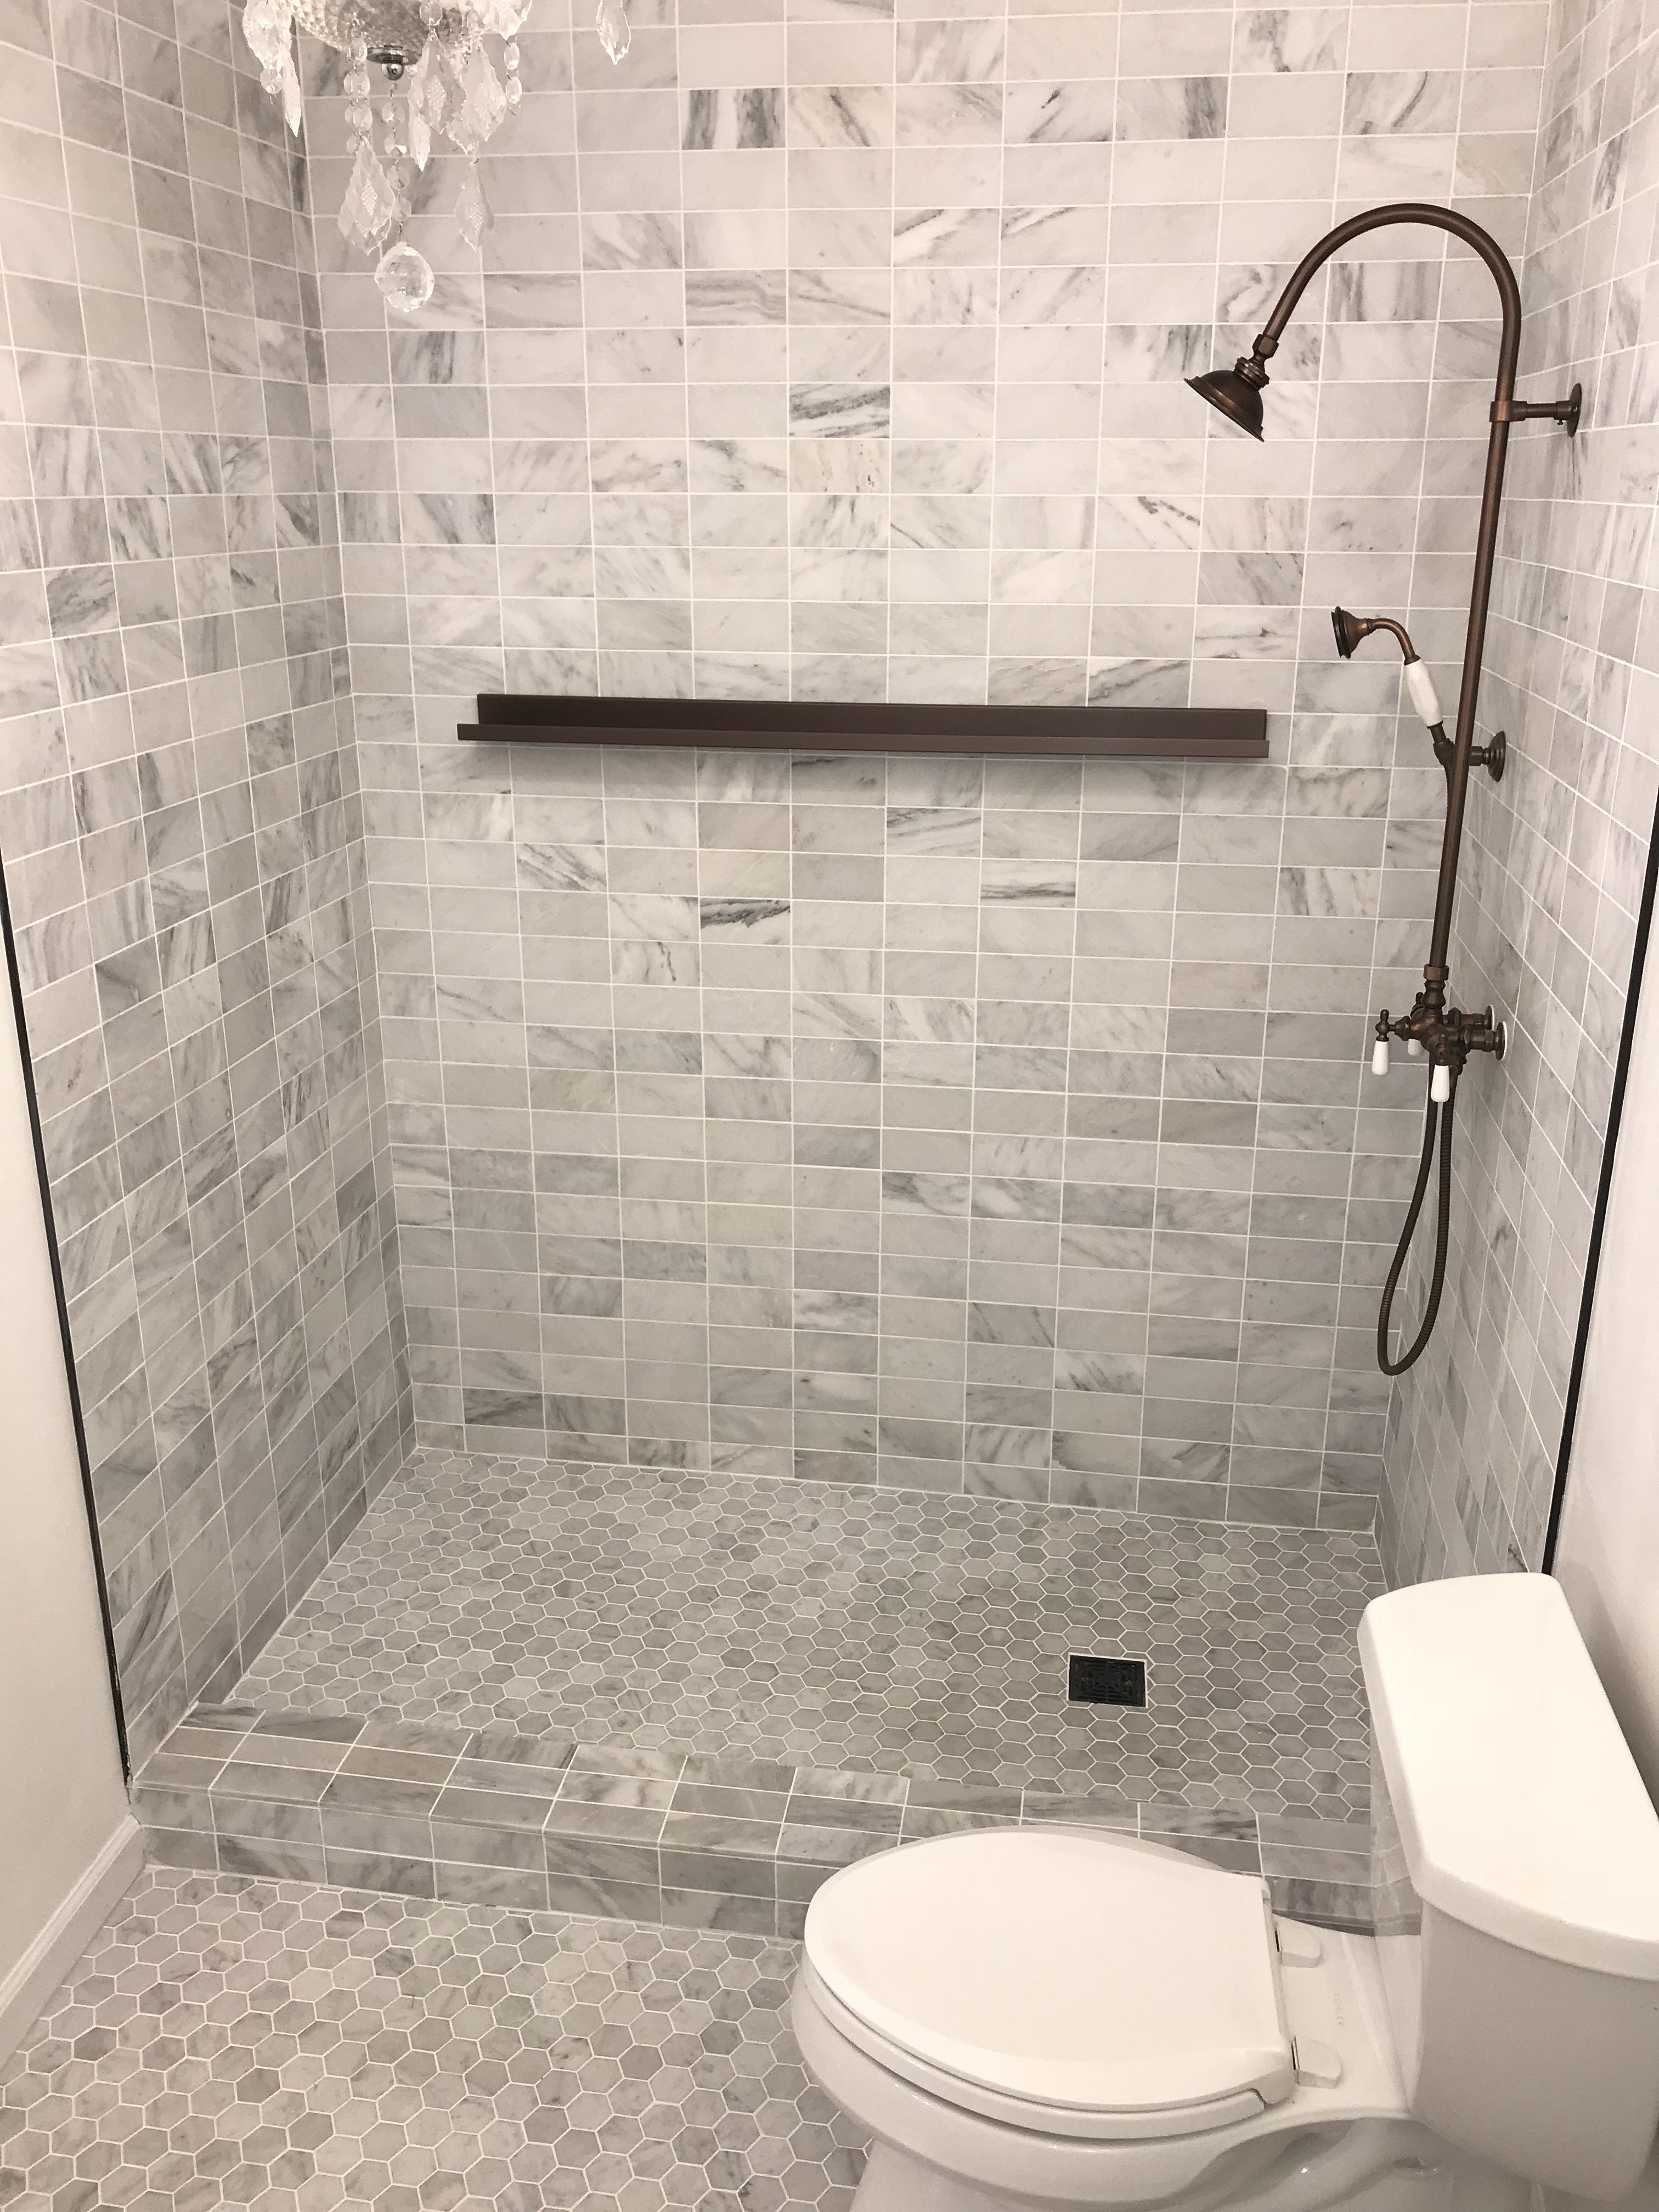 Michigan House Remodeling We Specialize In Update Or Adding Bathroom In Your House Install Cement Board Tile Or Bathrooms Remodel Light Installation Bathroom